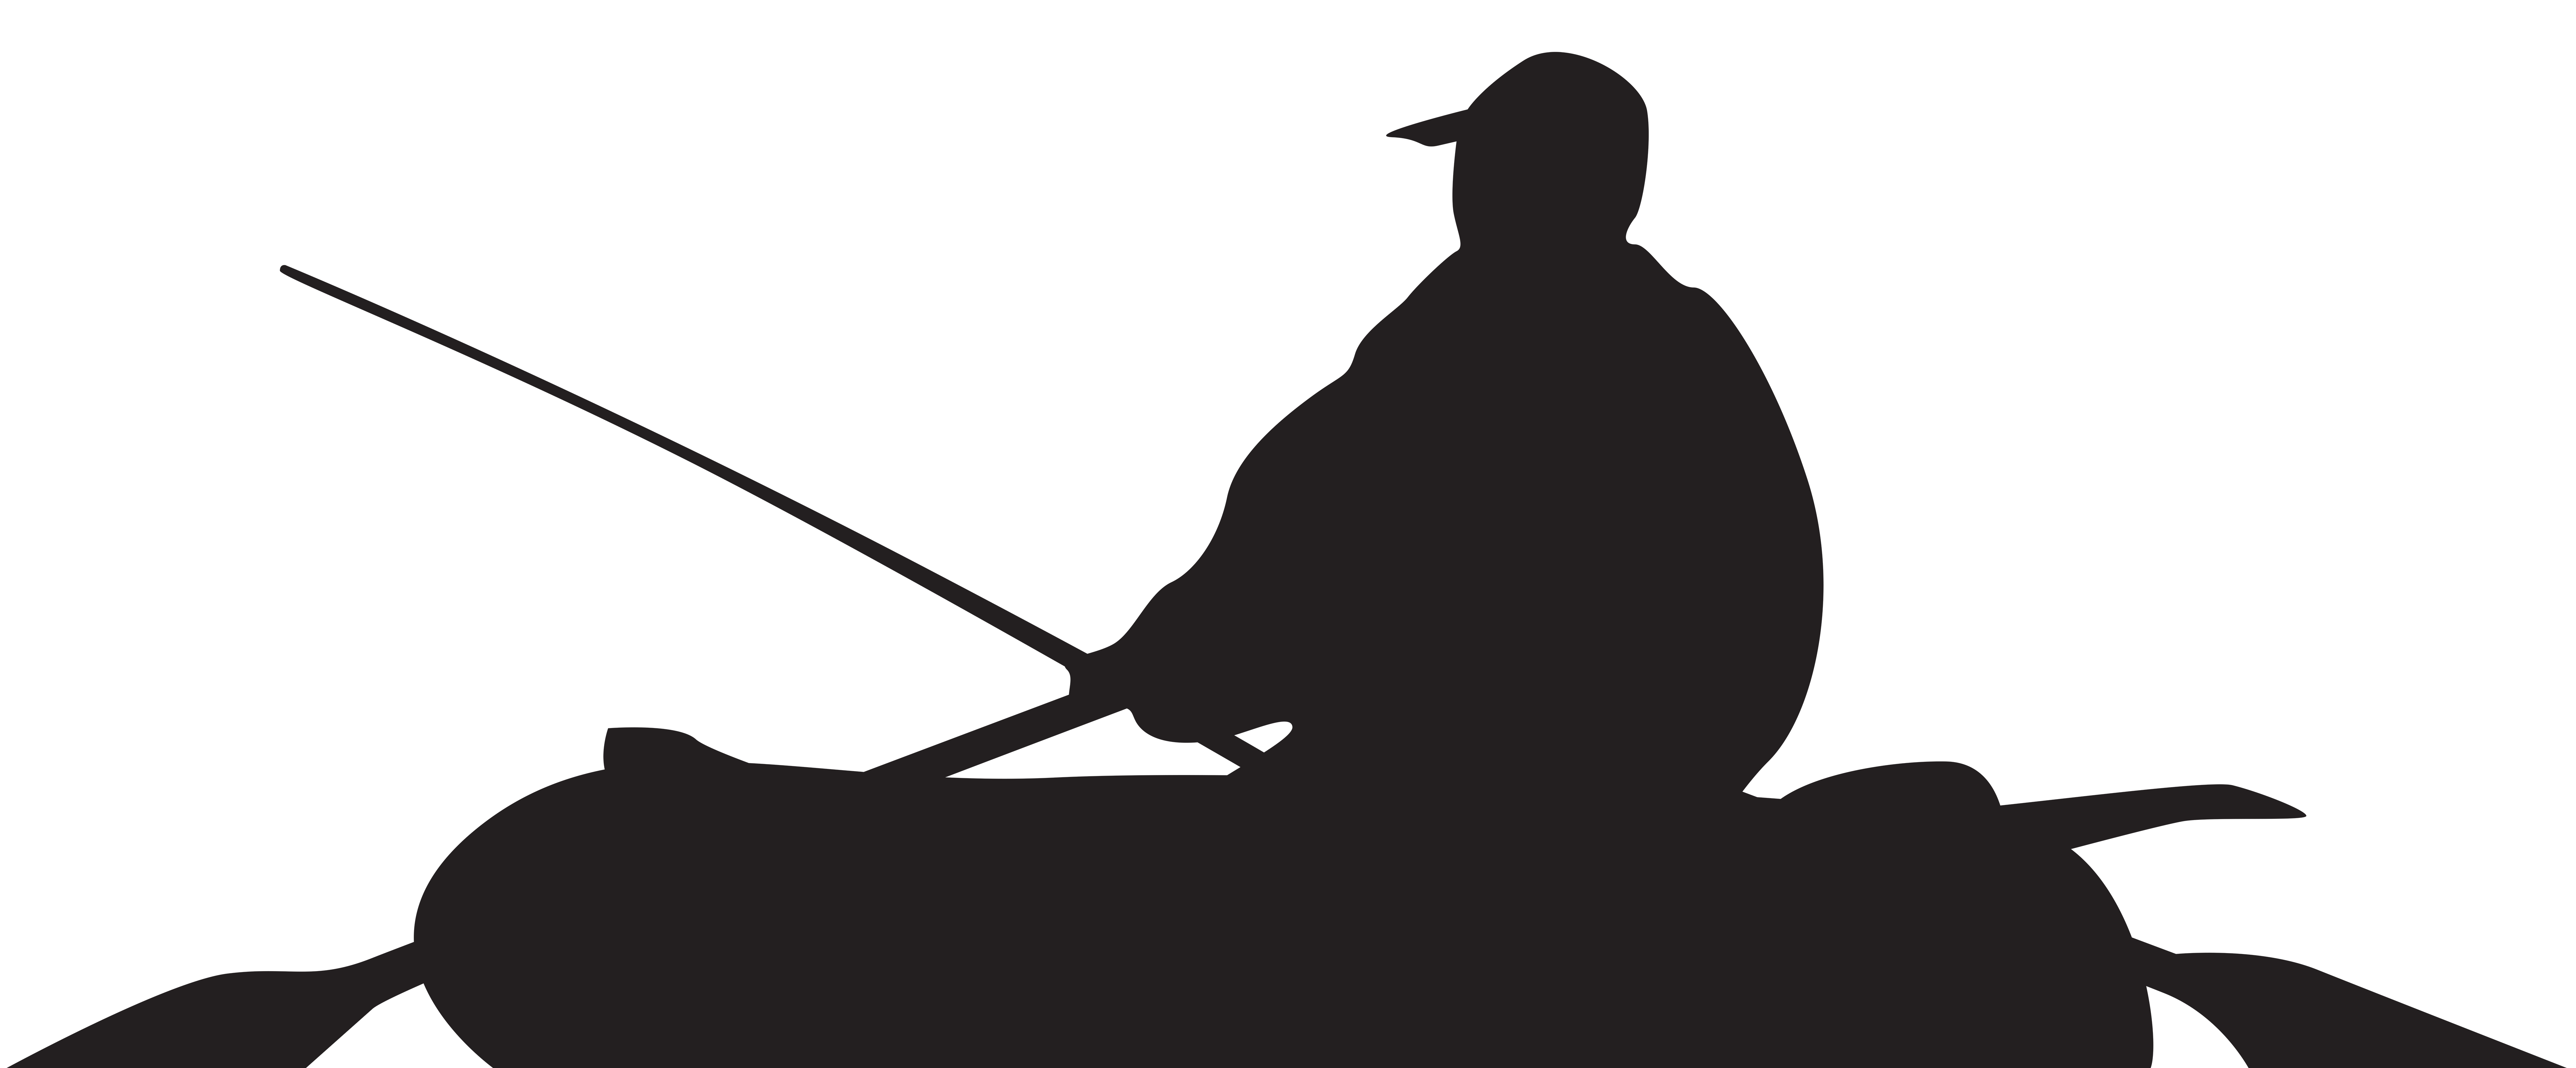 Thanksgiving boat clipart graphic free download Fishing Boat Clipart Silhouette Free collection | Download and share ... graphic free download